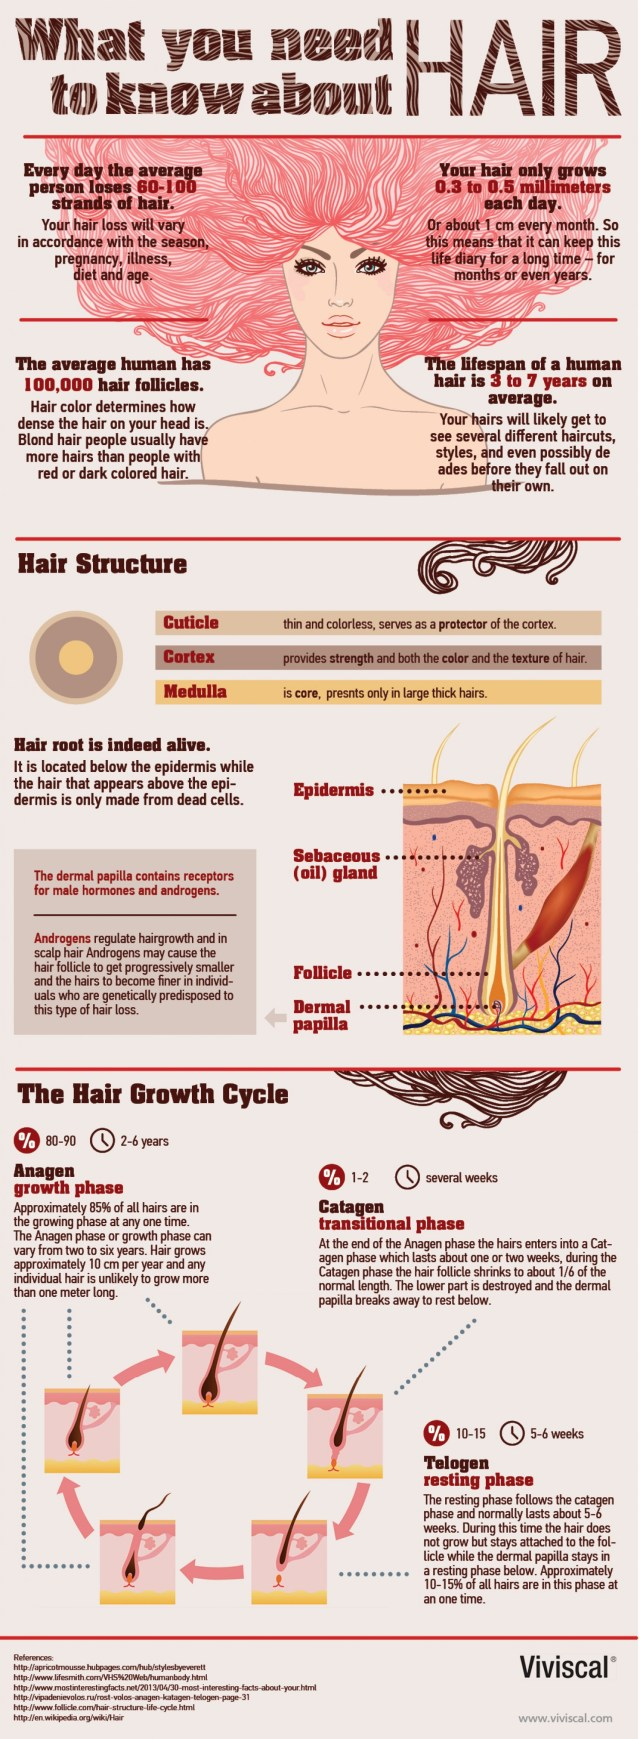 what-you-need-to-know-about-hair_52bc5e9dcf35d_w1500-1